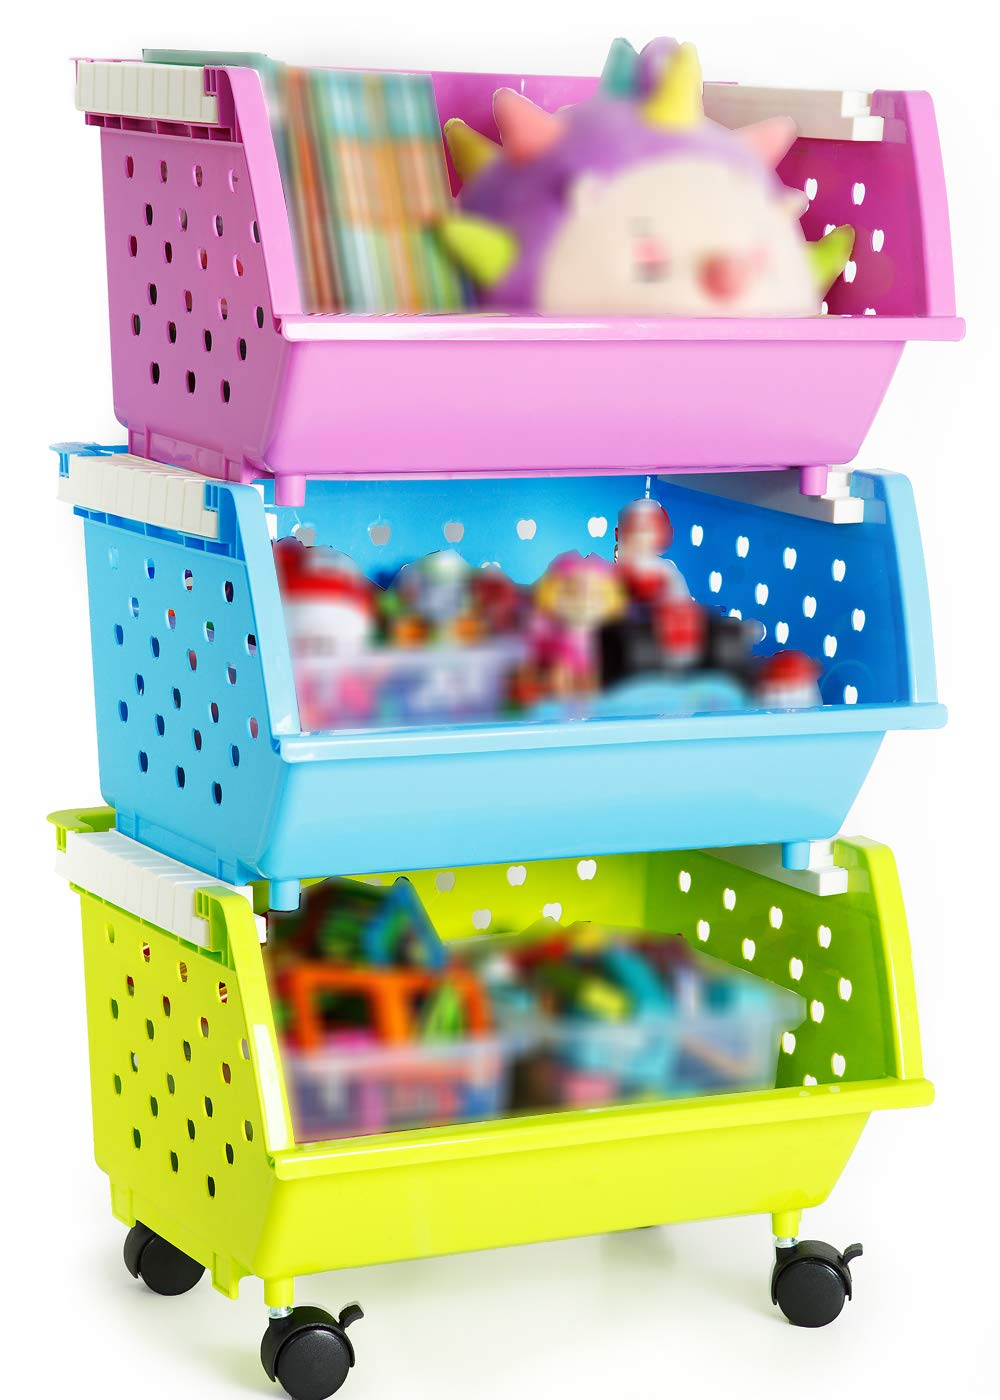 6 Baskets Choose MAGDESIGNER Kids Toys Chest Large Baskets Storage Bins Organizer with Wheels Can Move EverywhereNatural//Primary Primary Collection